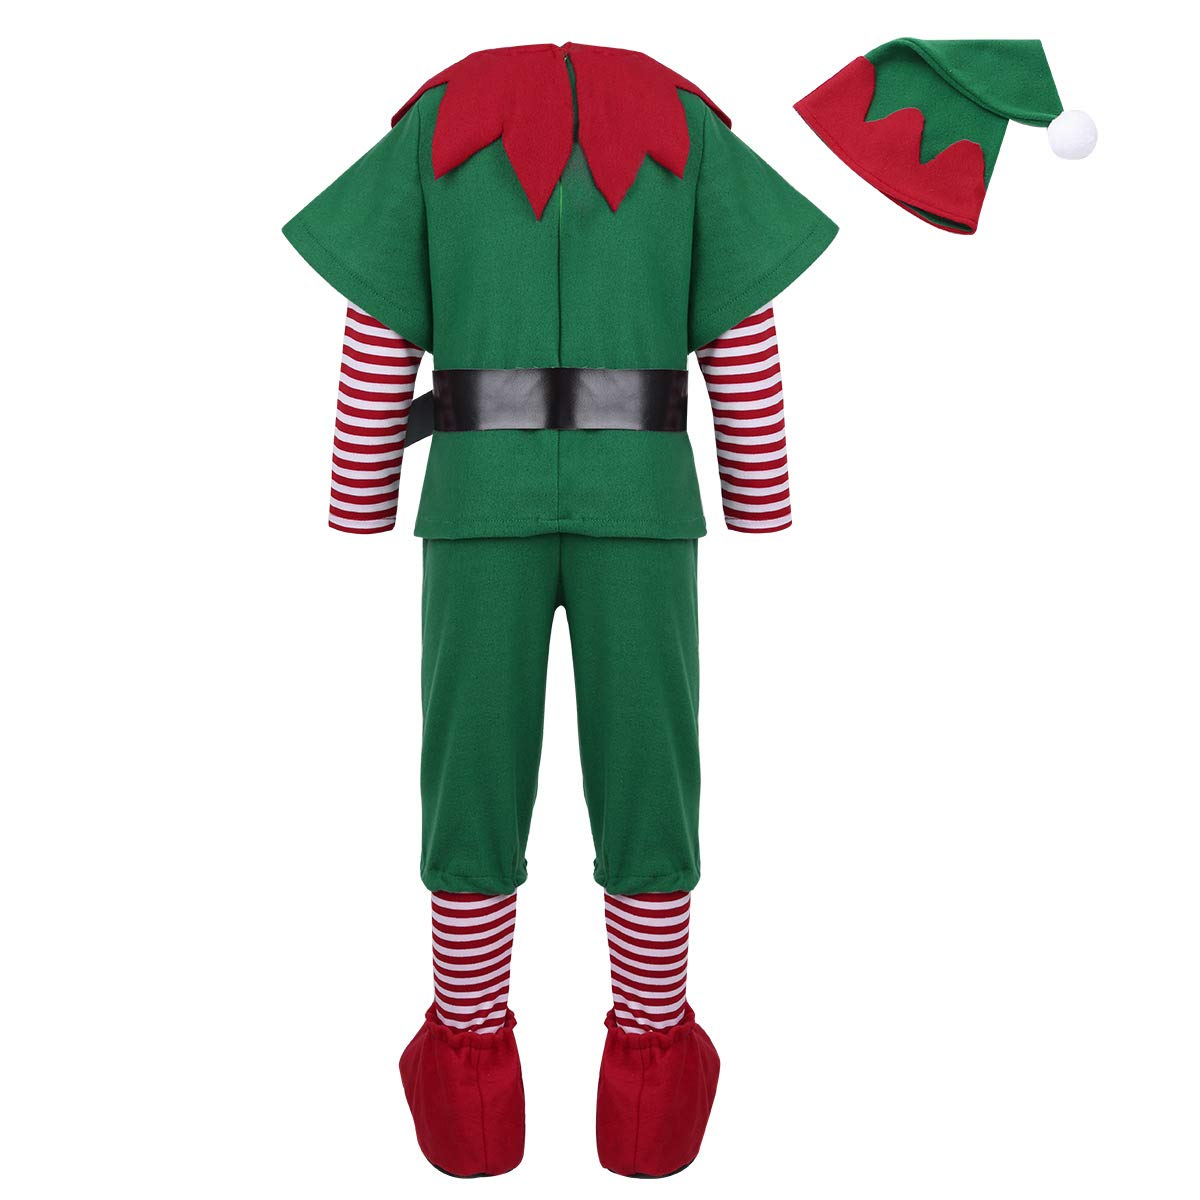 Alvivi Kids Childrens Boys Santas Elf Costumes Christmas Festive Suit Party Holiday Outfit with Hats Boots Set Green 12-14